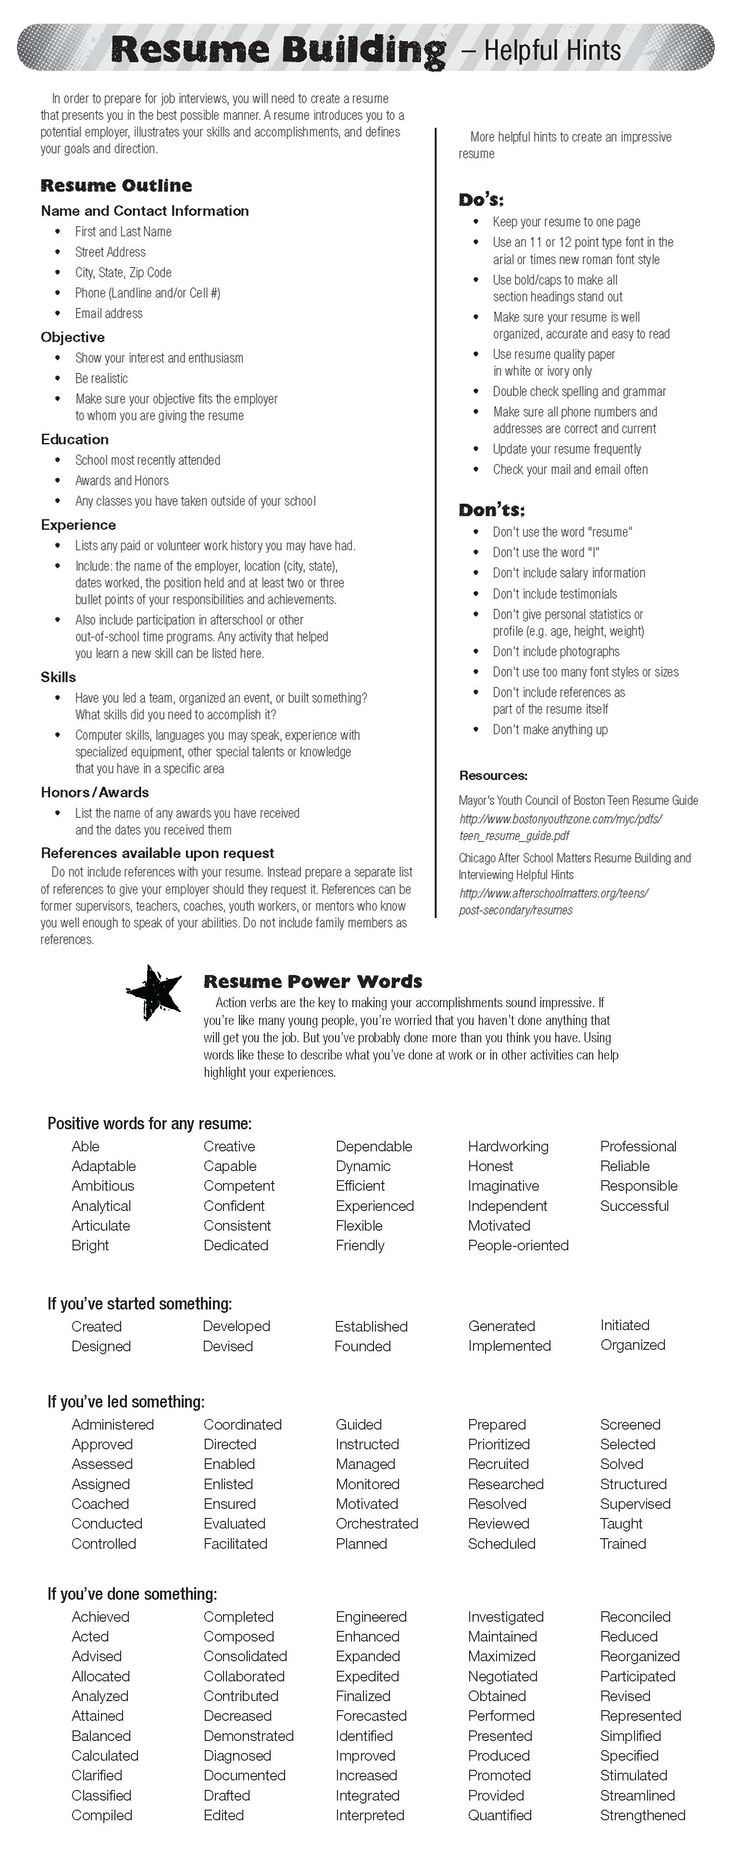 Opposenewapstandardsus  Outstanding  Ideas About Resume On Pinterest  Cv Format Resume Cv And  With Licious  Ideas About Resume On Pinterest  Cv Format Resume Cv And Resume Templates With Delightful Wordpress Resume Also Real Estate Resume Sample In Addition Job Resume Examples For College Students And Resume Qualities As Well As Objective Examples On Resume Additionally Worst Resume Ever From Pinterestcom With Opposenewapstandardsus  Licious  Ideas About Resume On Pinterest  Cv Format Resume Cv And  With Delightful  Ideas About Resume On Pinterest  Cv Format Resume Cv And Resume Templates And Outstanding Wordpress Resume Also Real Estate Resume Sample In Addition Job Resume Examples For College Students From Pinterestcom